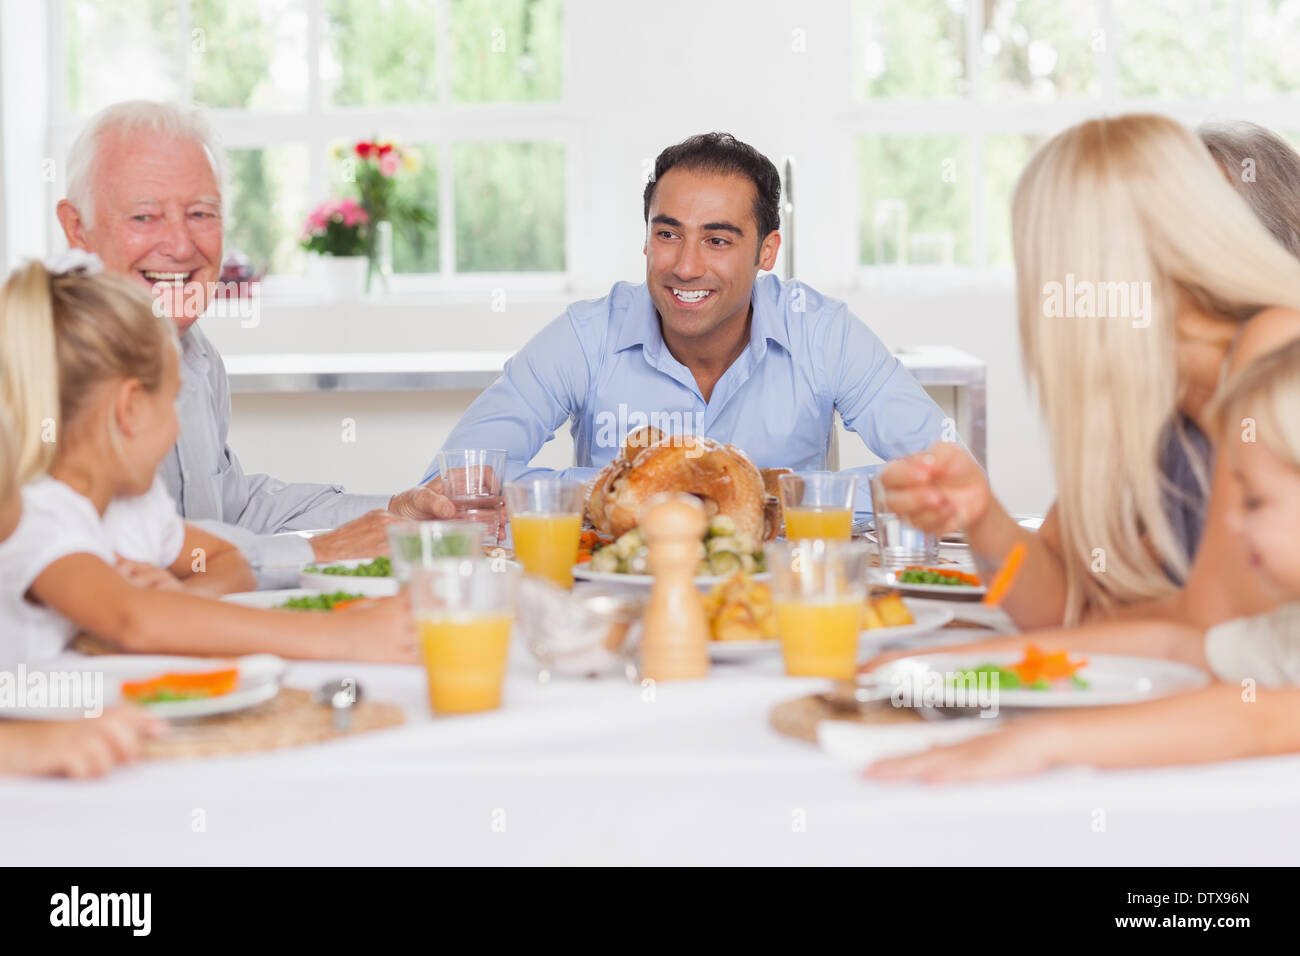 Happy family at thanksgiving - Stock Image